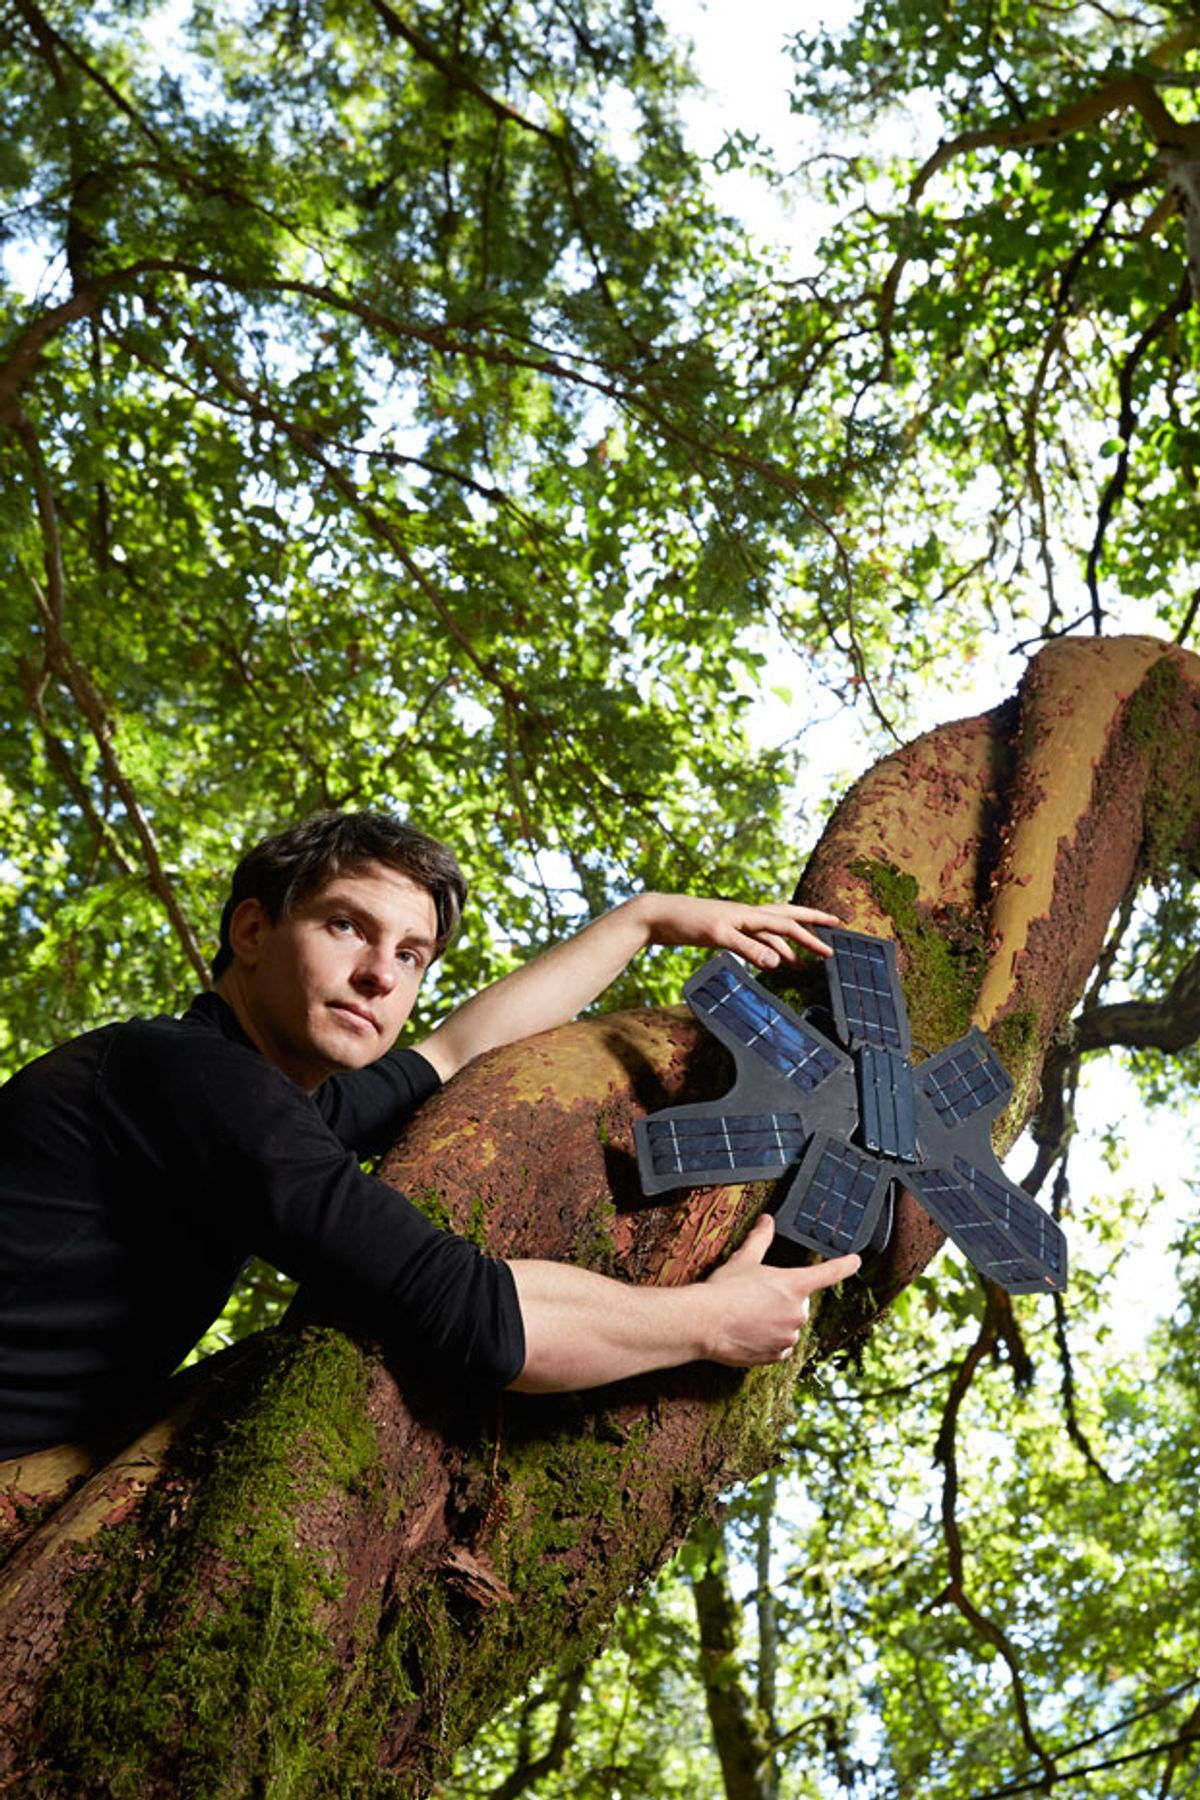 Topher White: Repurposing Cellphones to Defend the Rain Forest